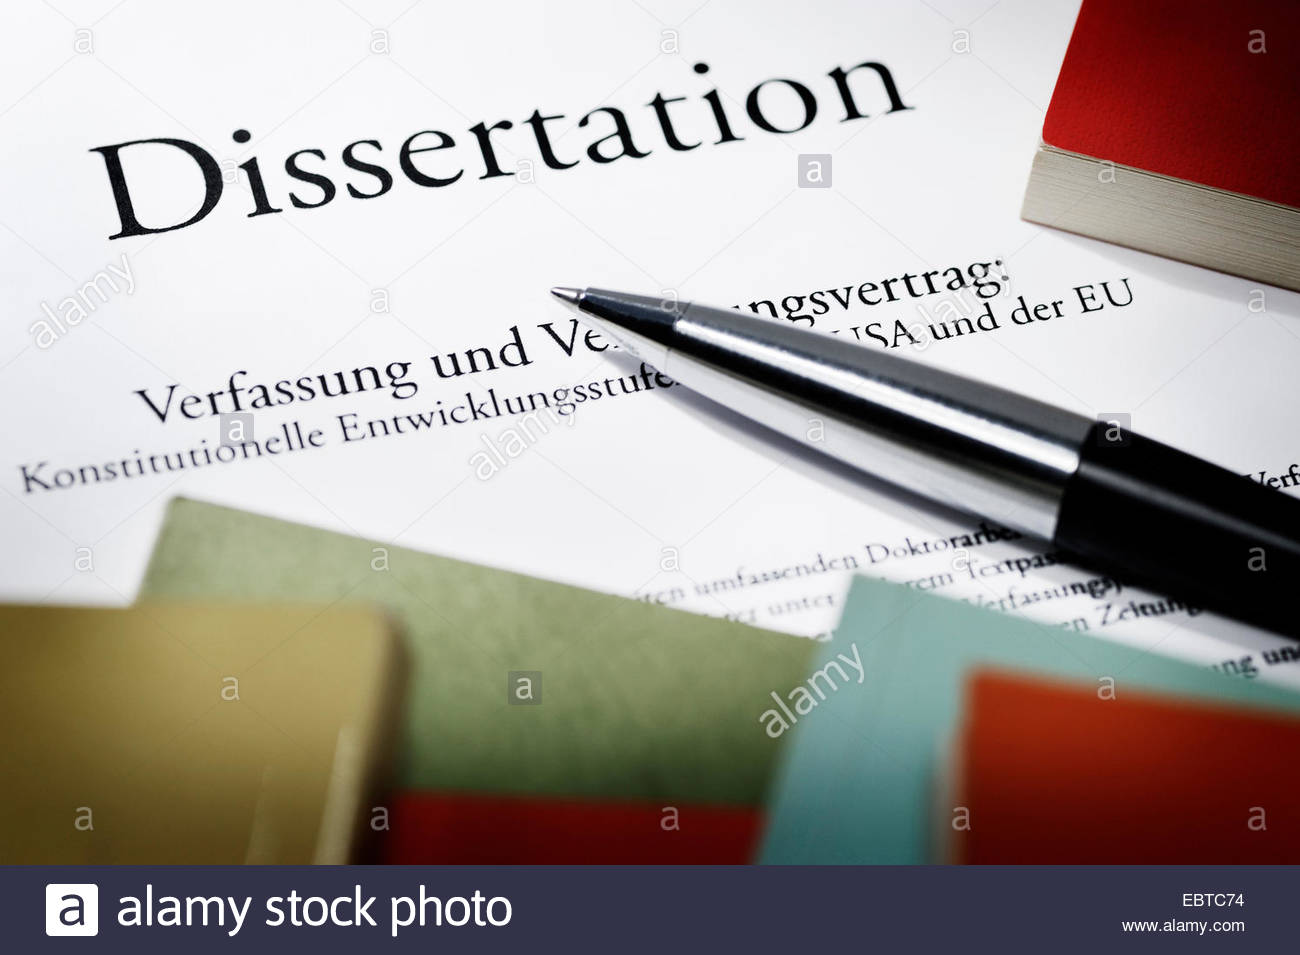 dissertation with books and pen, symbol picture 'plagiarism' - Stock Image